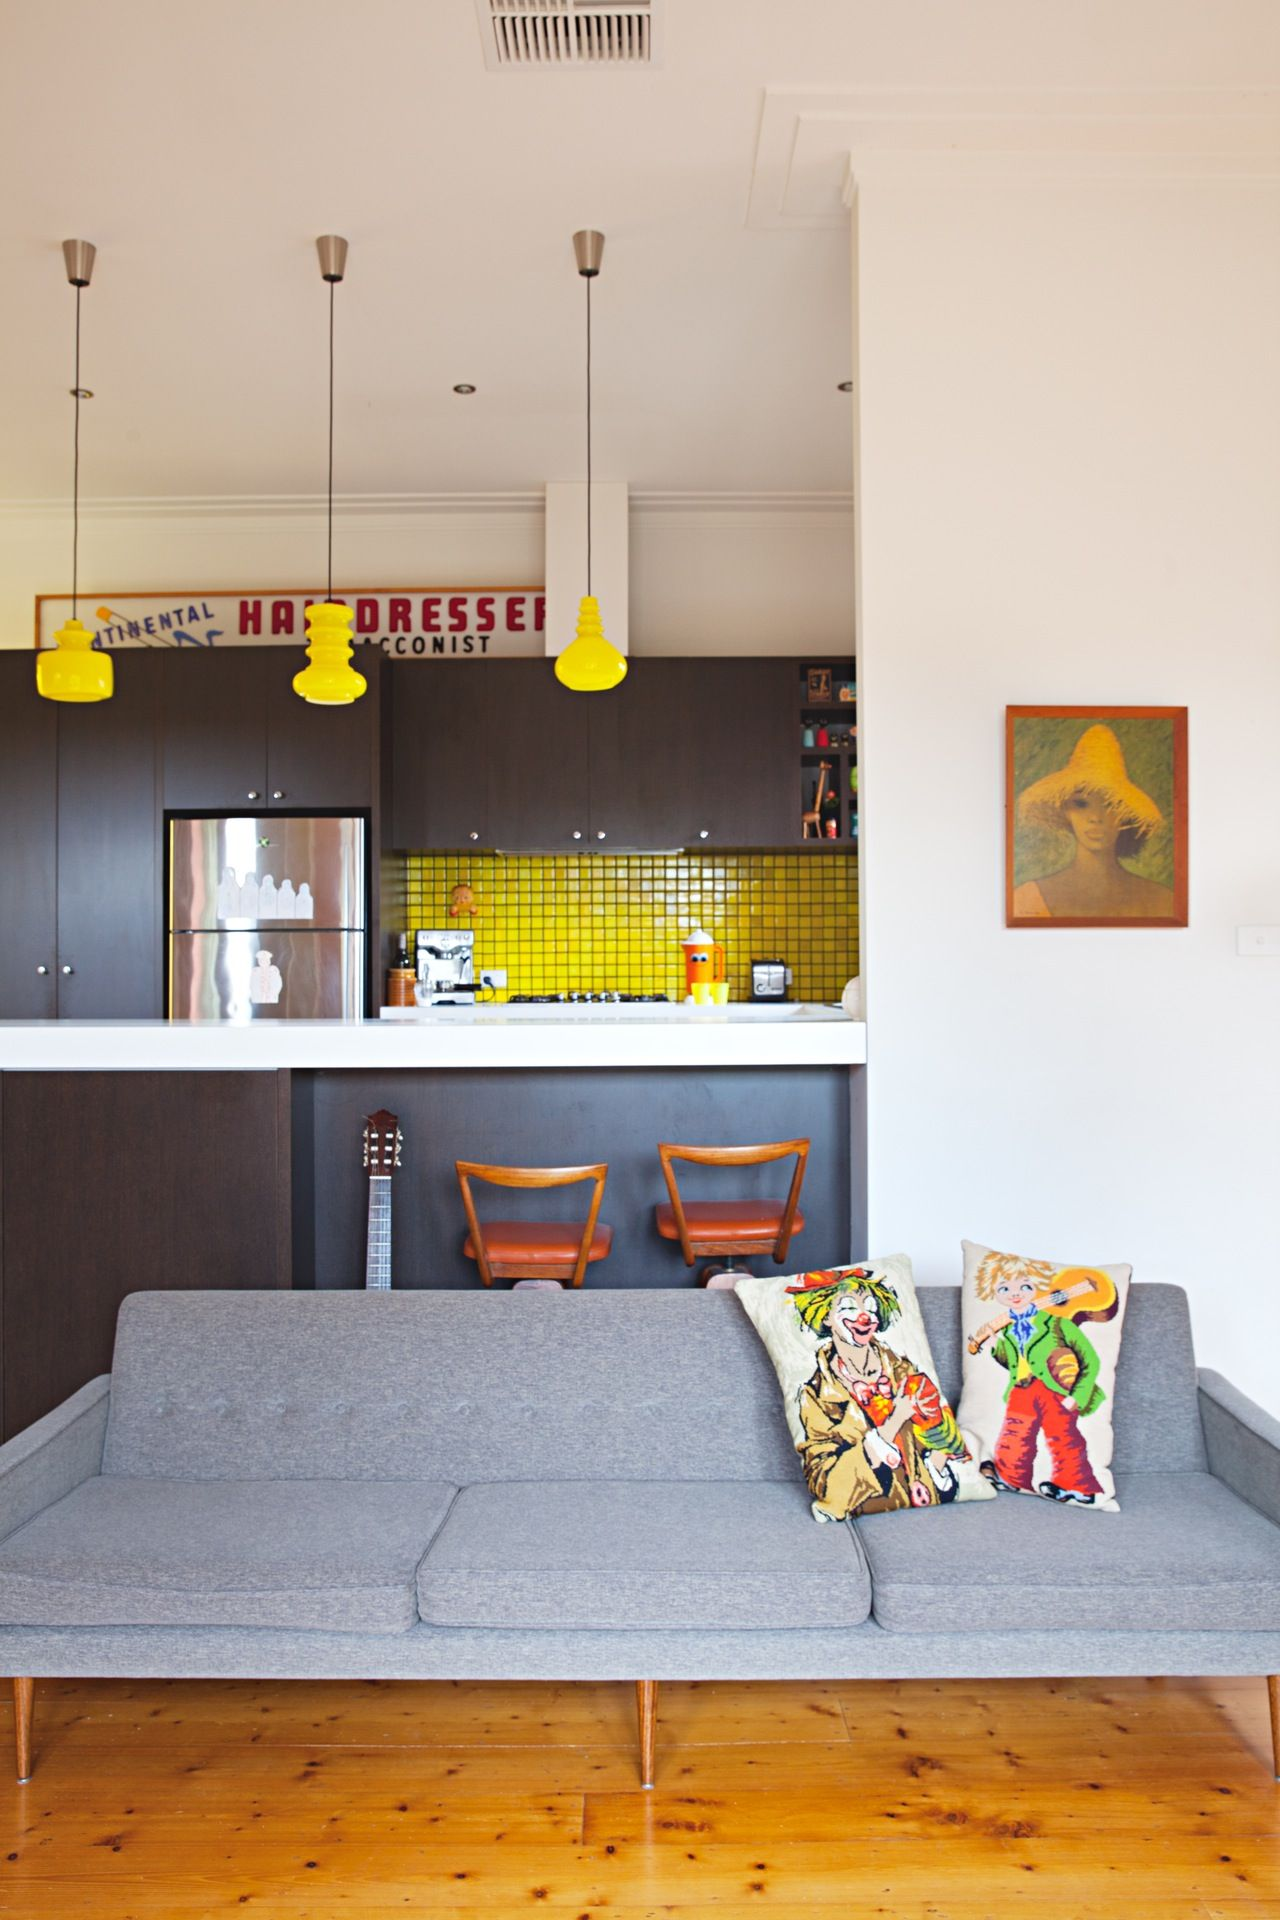 House Tour: A Melbourne Home Filled With Art & Toys